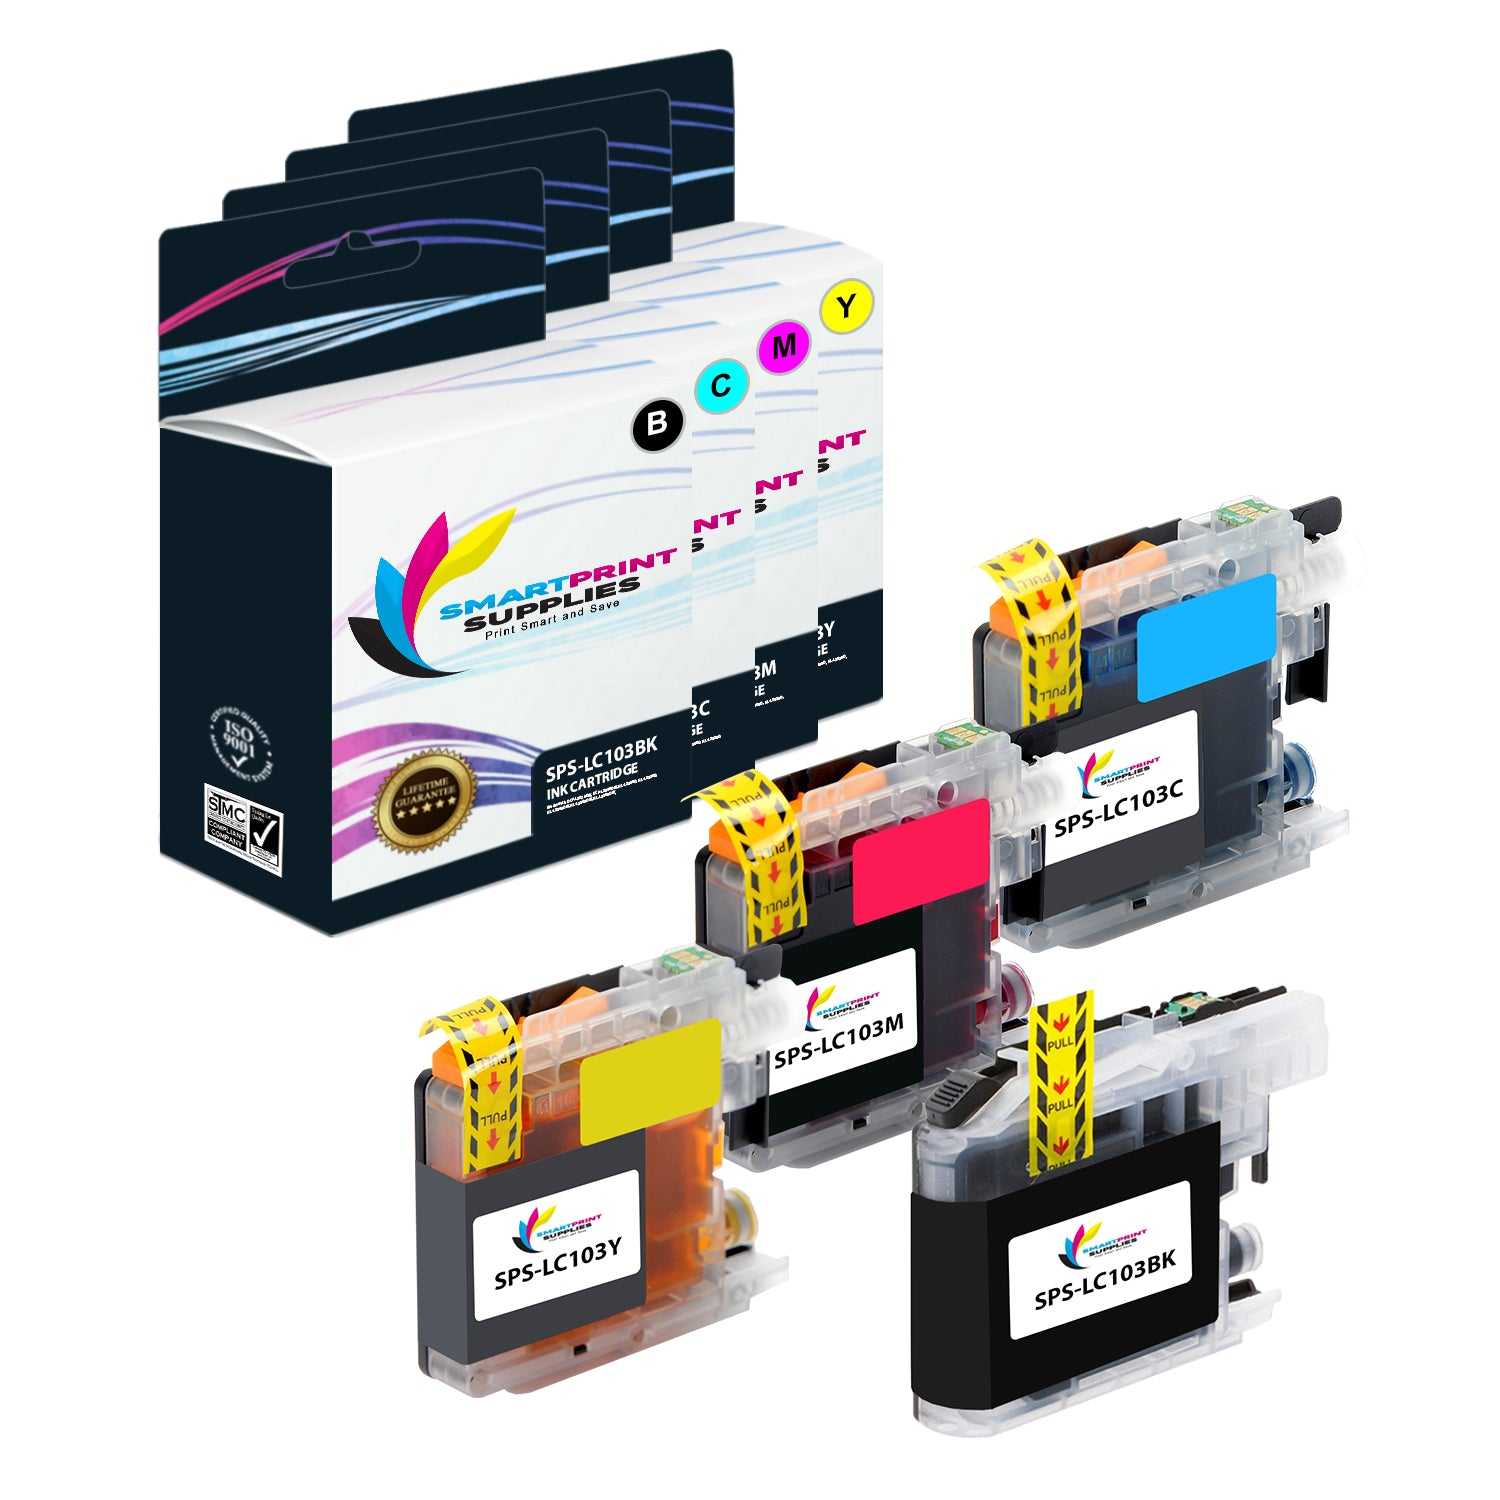 LiC-Store 12x 3Black, 3Cyan, 3Magenta, 3Yellow Ink Cartridge LC10 LC37 LC51 LC57 LC960 LC970 LC1000 Compatible For Brother DCP-130C DCP-135C MFC-235C MFC-240C printer